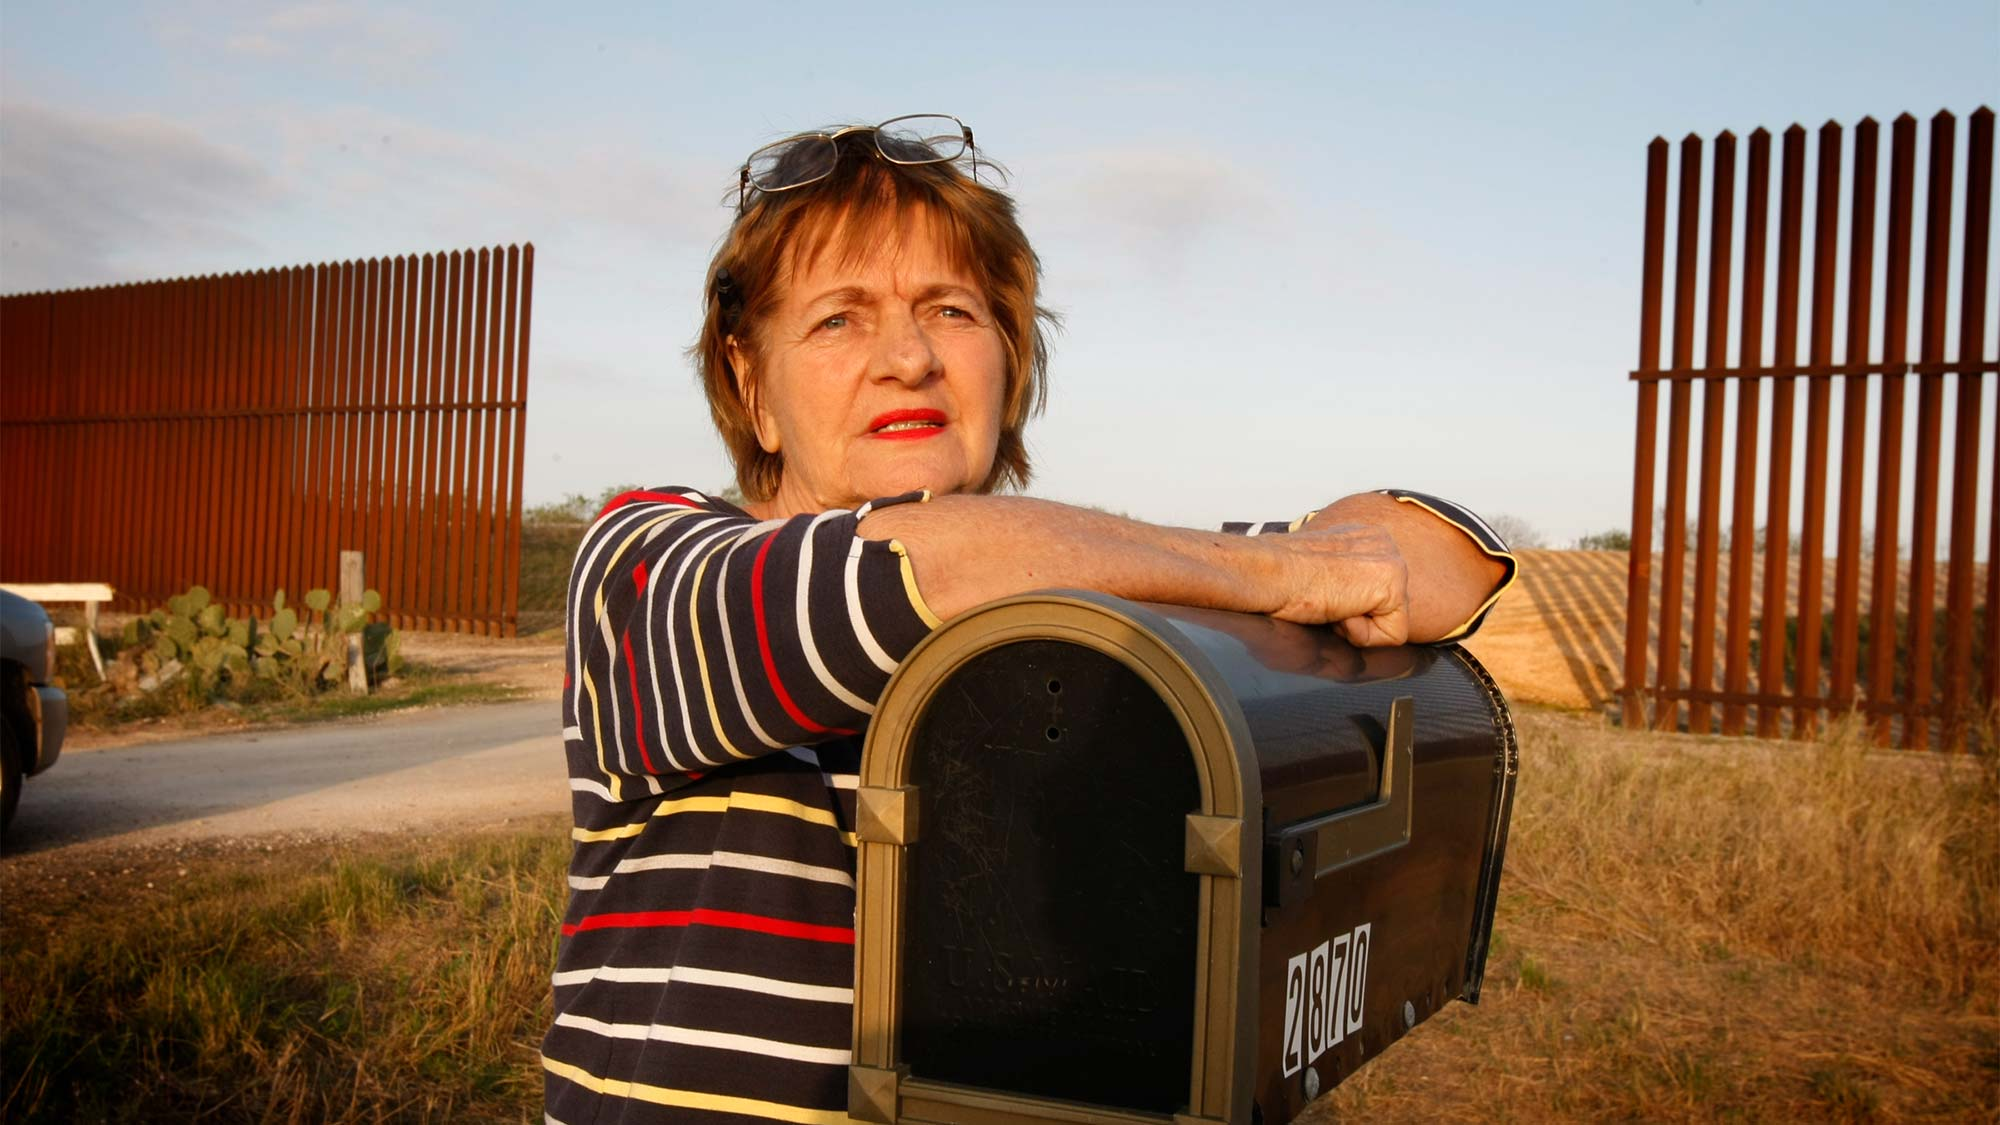 Outside of Brownsville, TX, Debbie Loop stands at the U.S./Mexico border fence that chops her property in half and divides her family's residences.